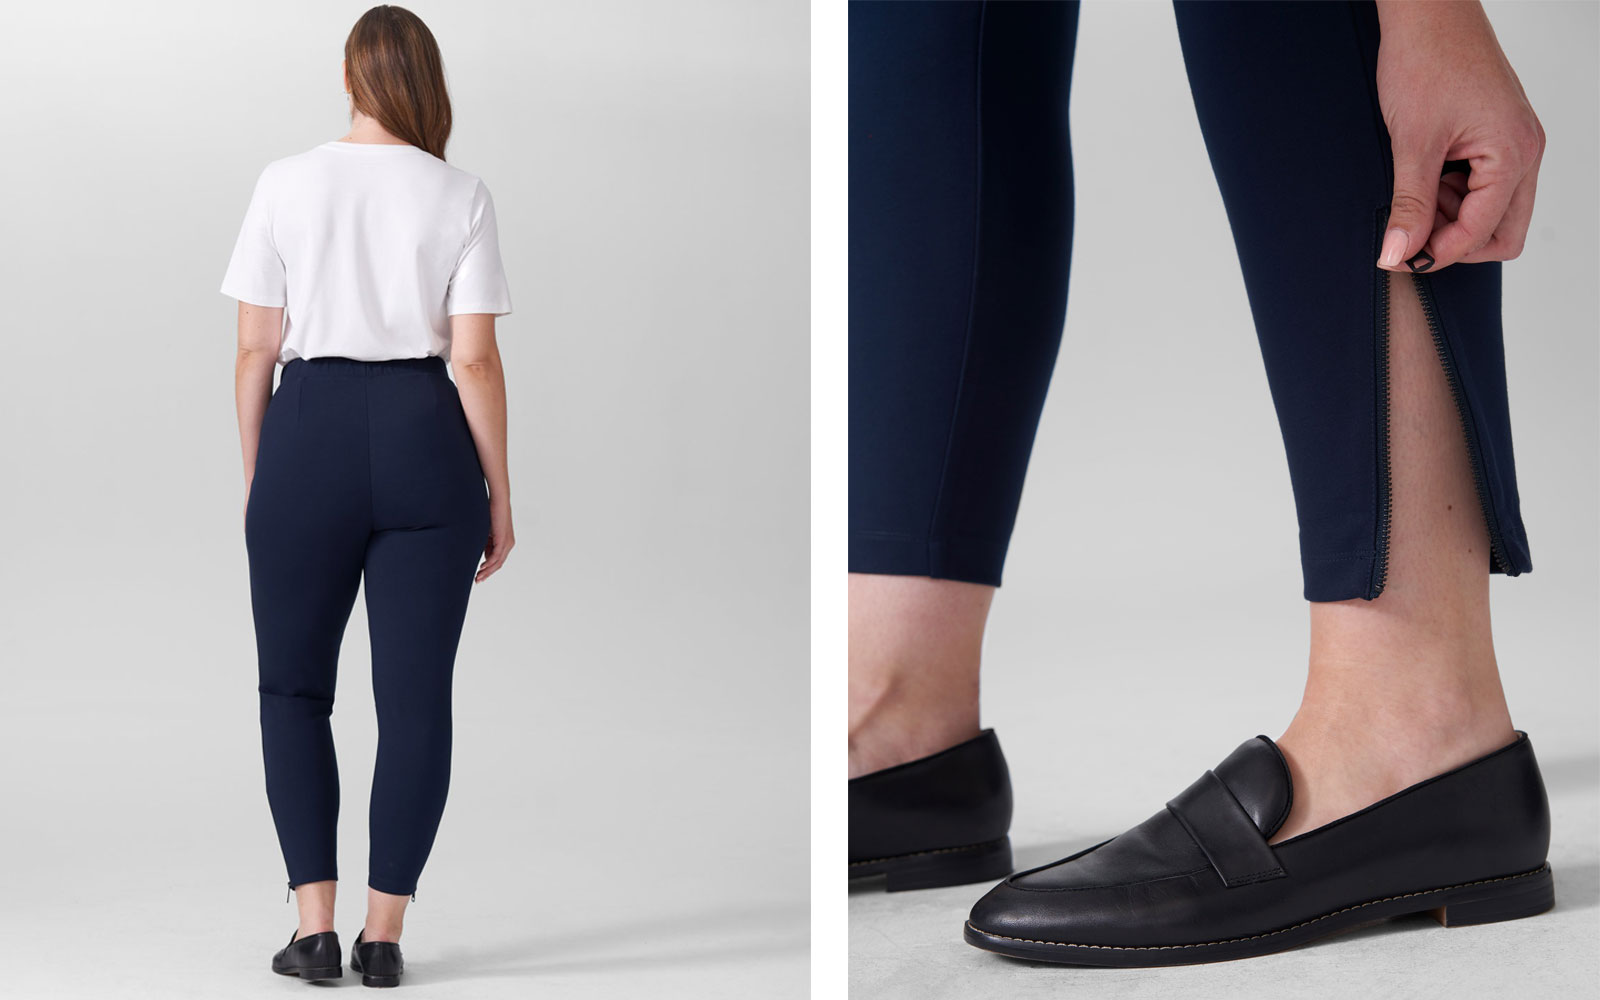 These Wrinkle-resistant Pants Are Comfortable, Flattering, and Perfect for Travel